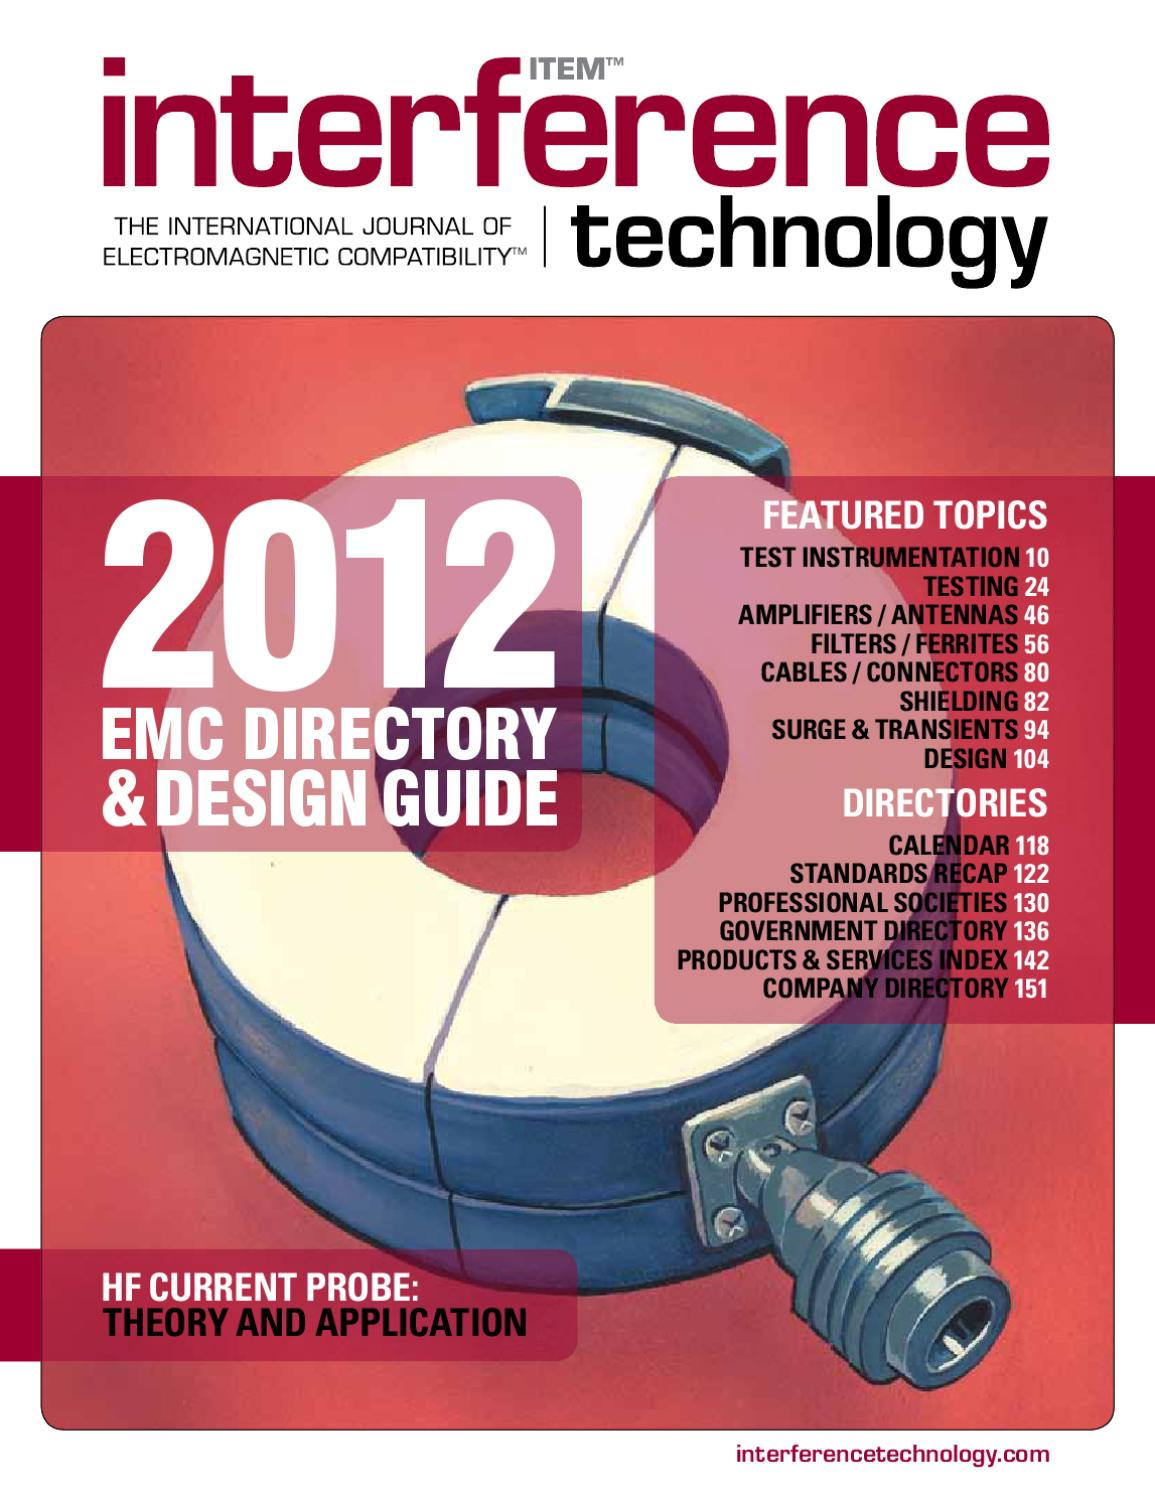 2012 Interference Technology EMC Directory & Design Guide by ITEM Media -  issuu